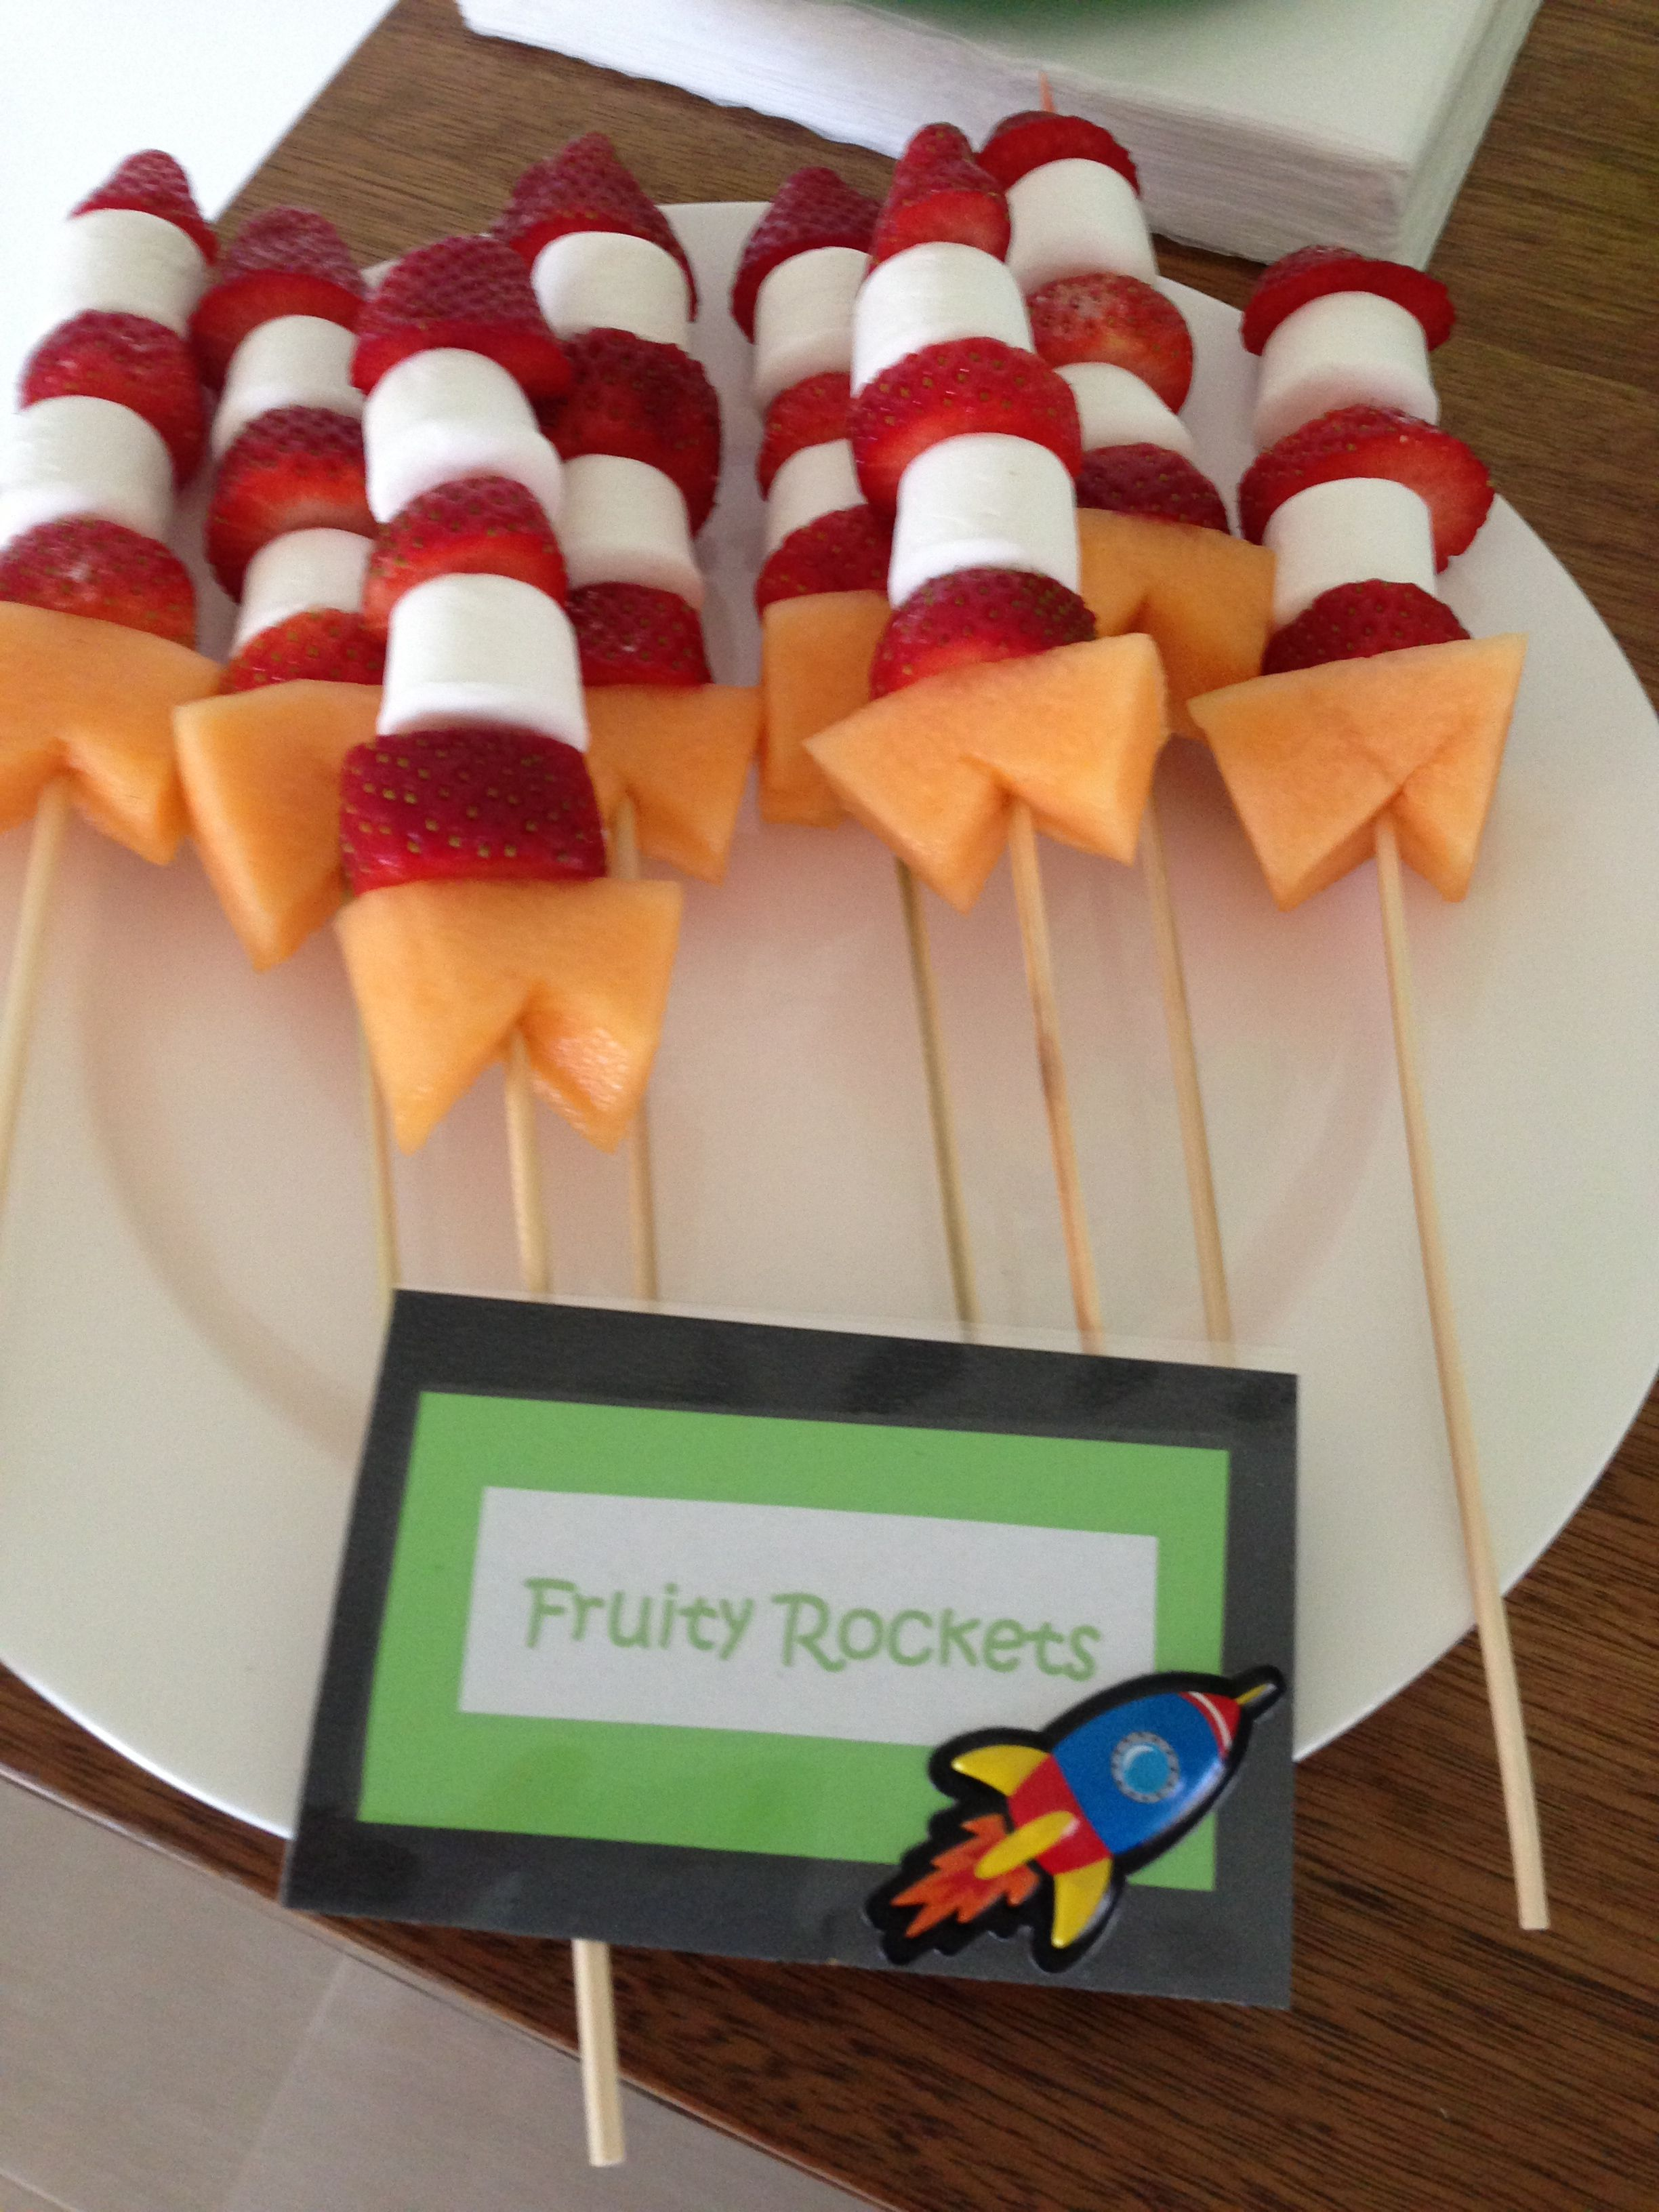 Fruity Rockets For Space Party They Are Slightly Phallic Though